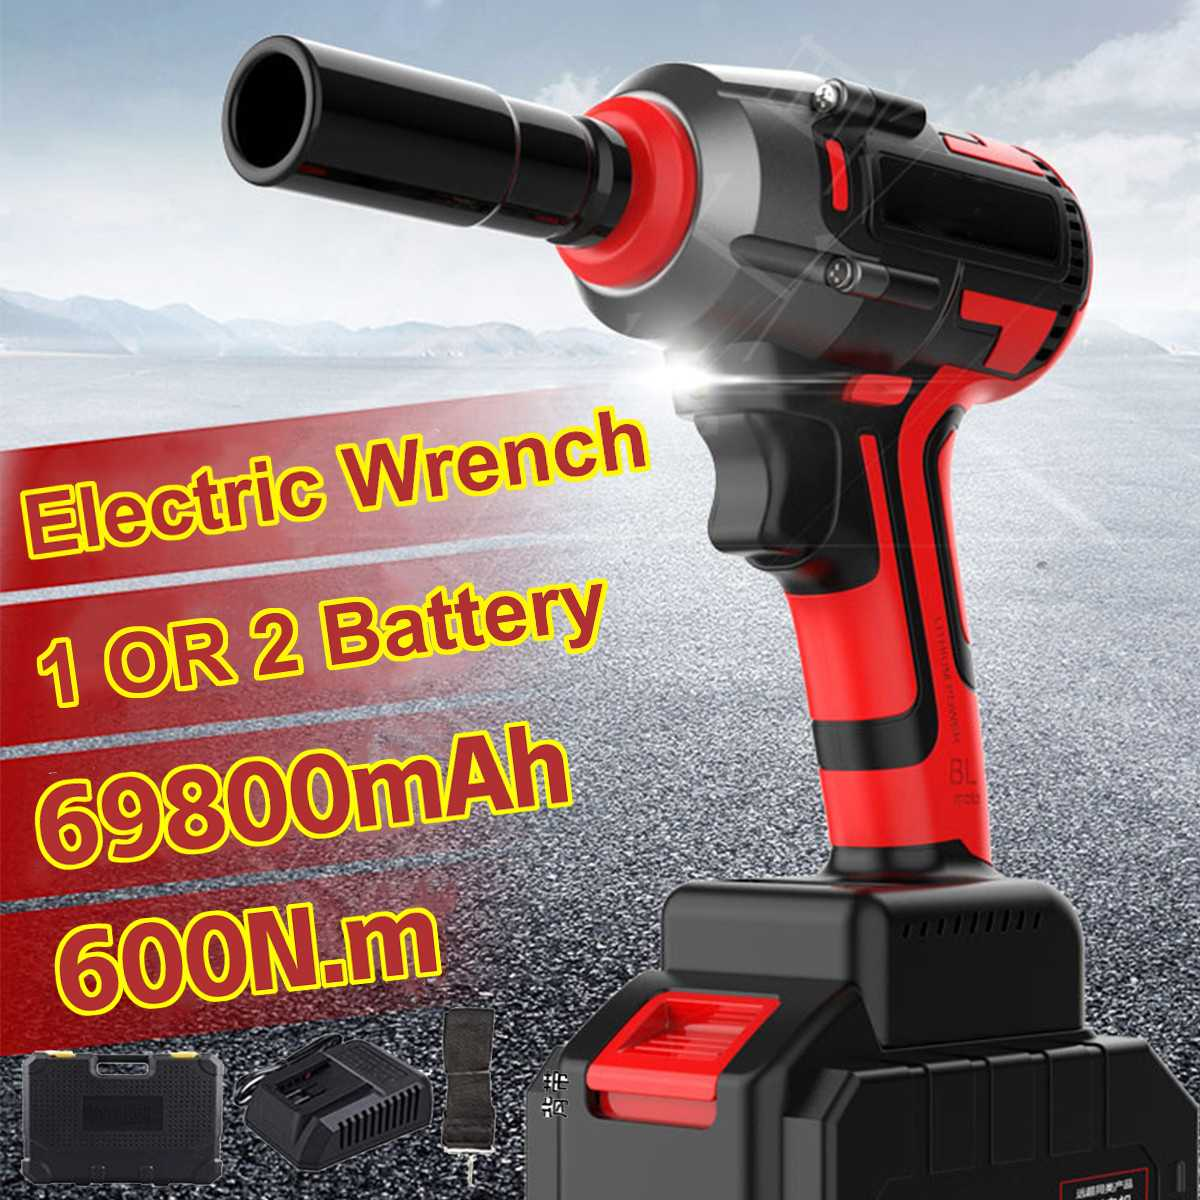 Electric Wrench Impact Brushless Socket Wrench 69800mAh Li Battery 600N.m Torque Impact Wrench 220v Brushless Car Electric Tools